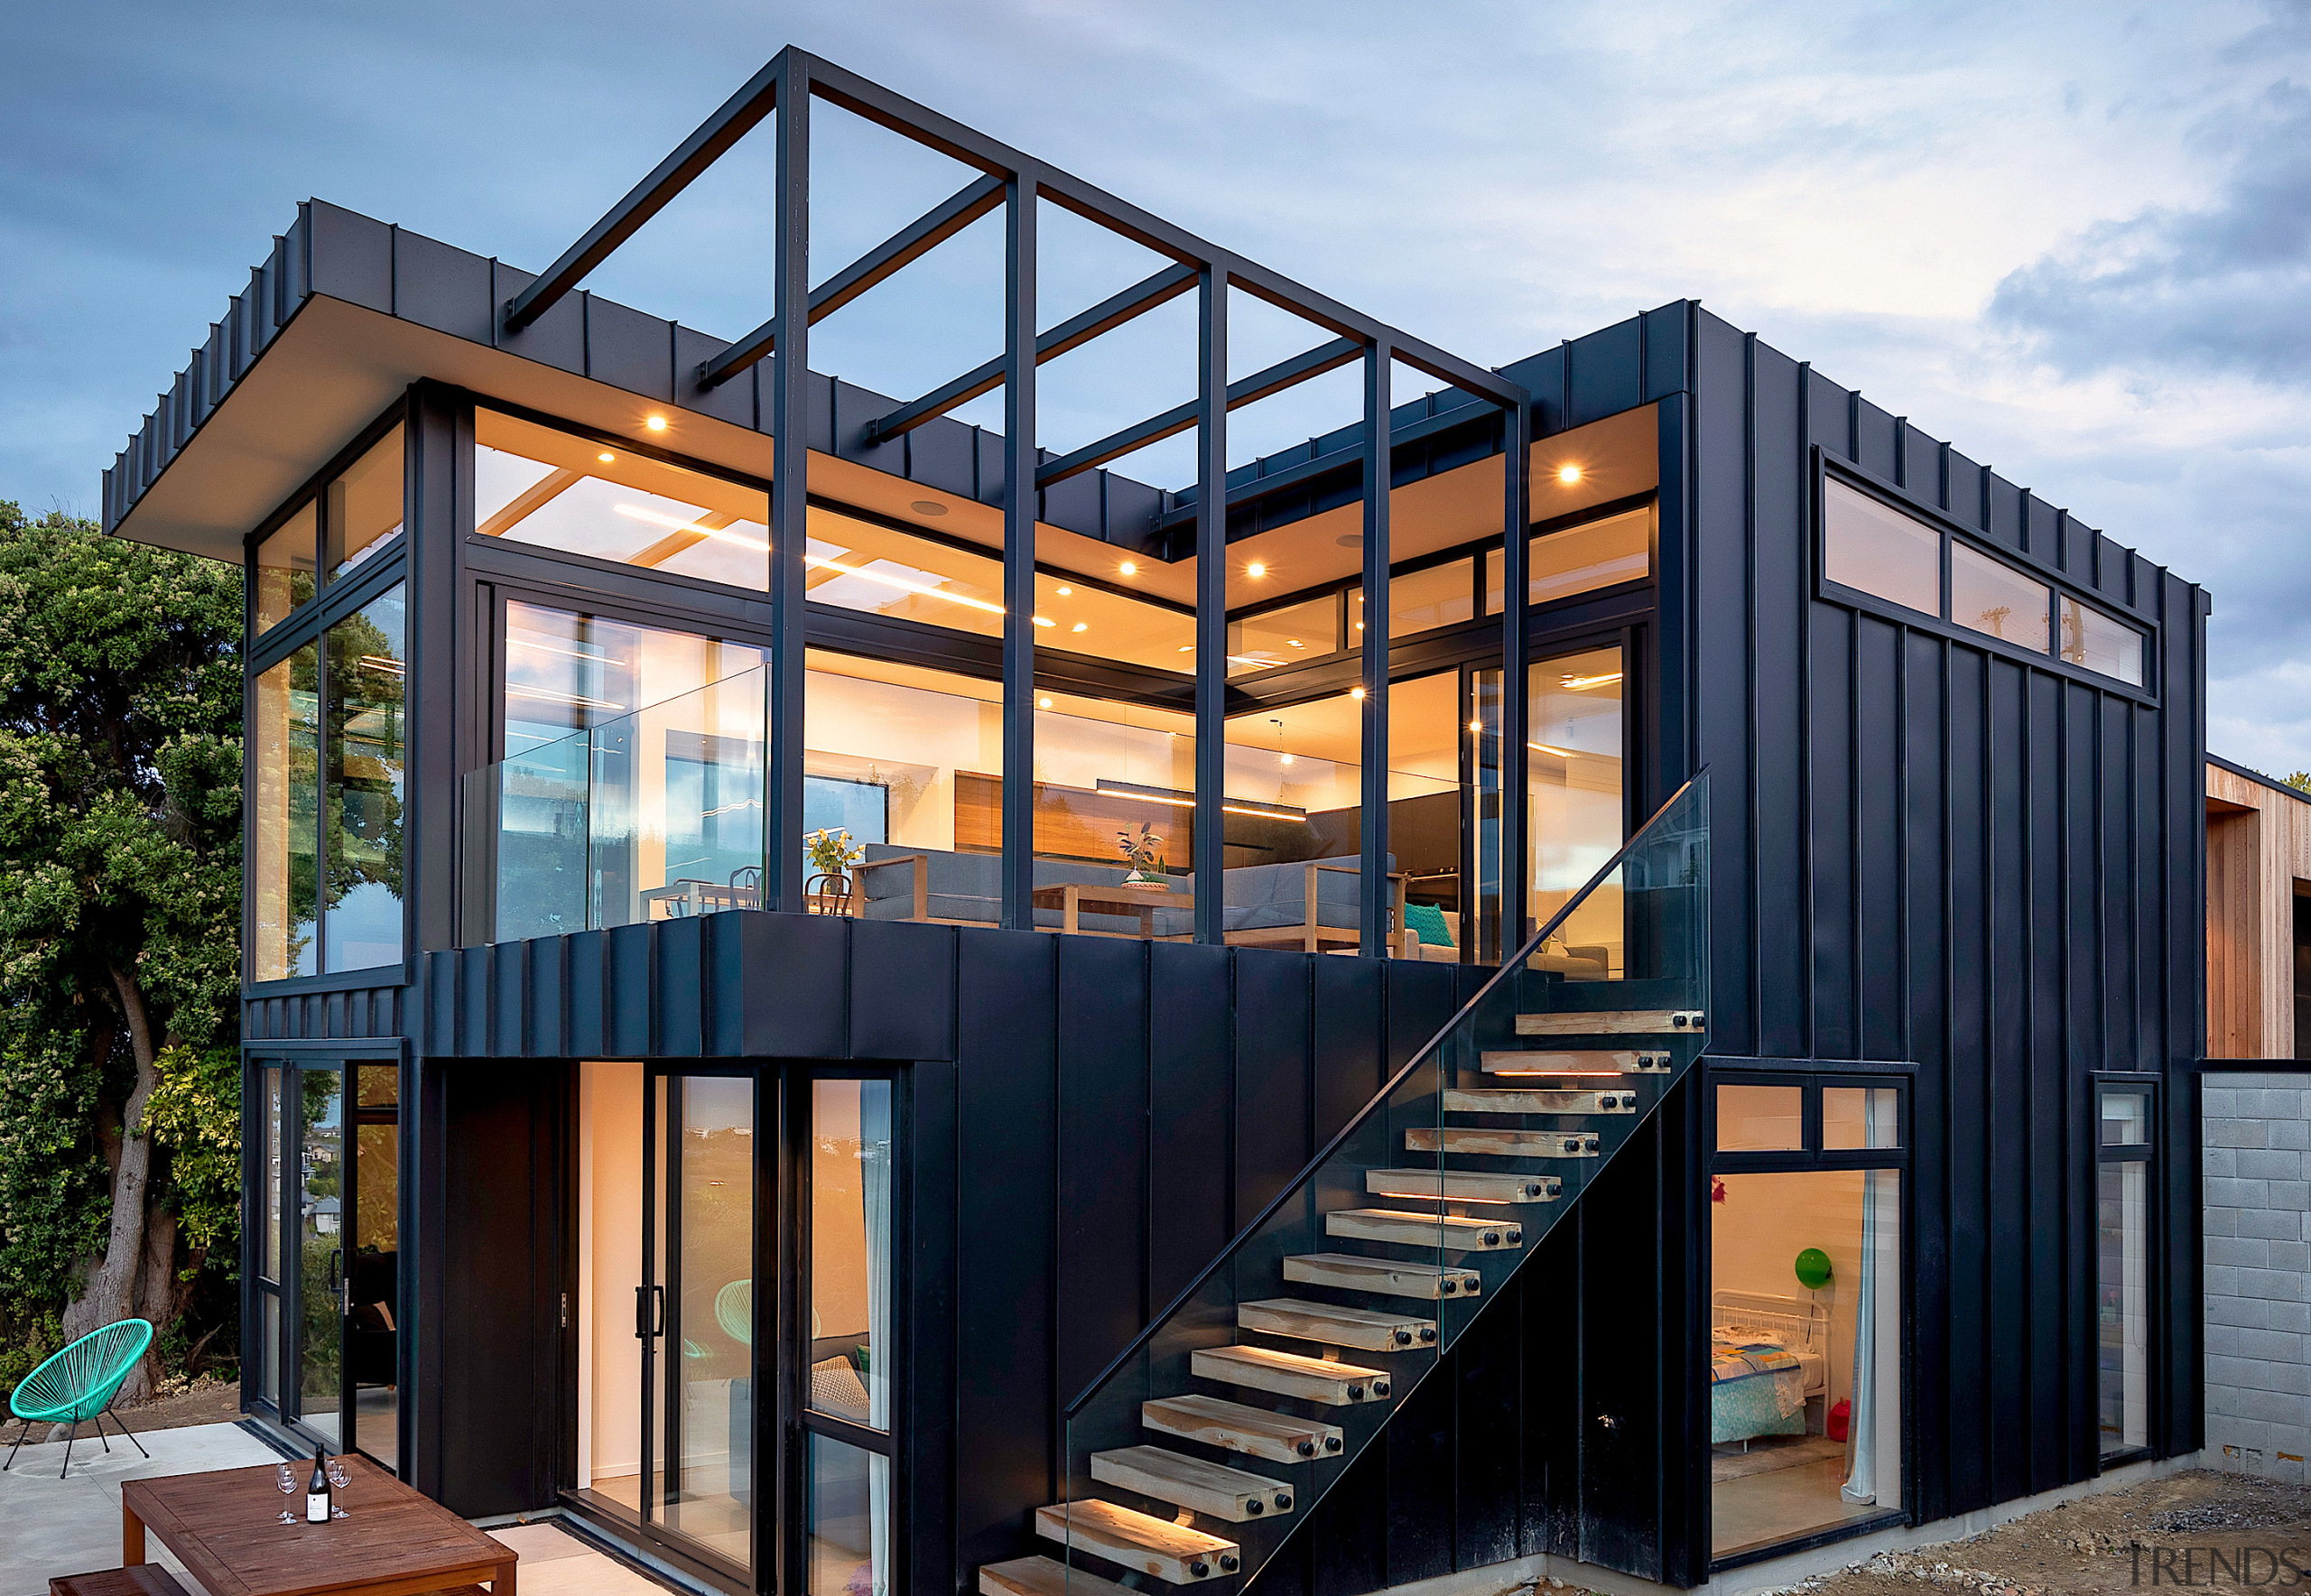 Black and wood world – the building is